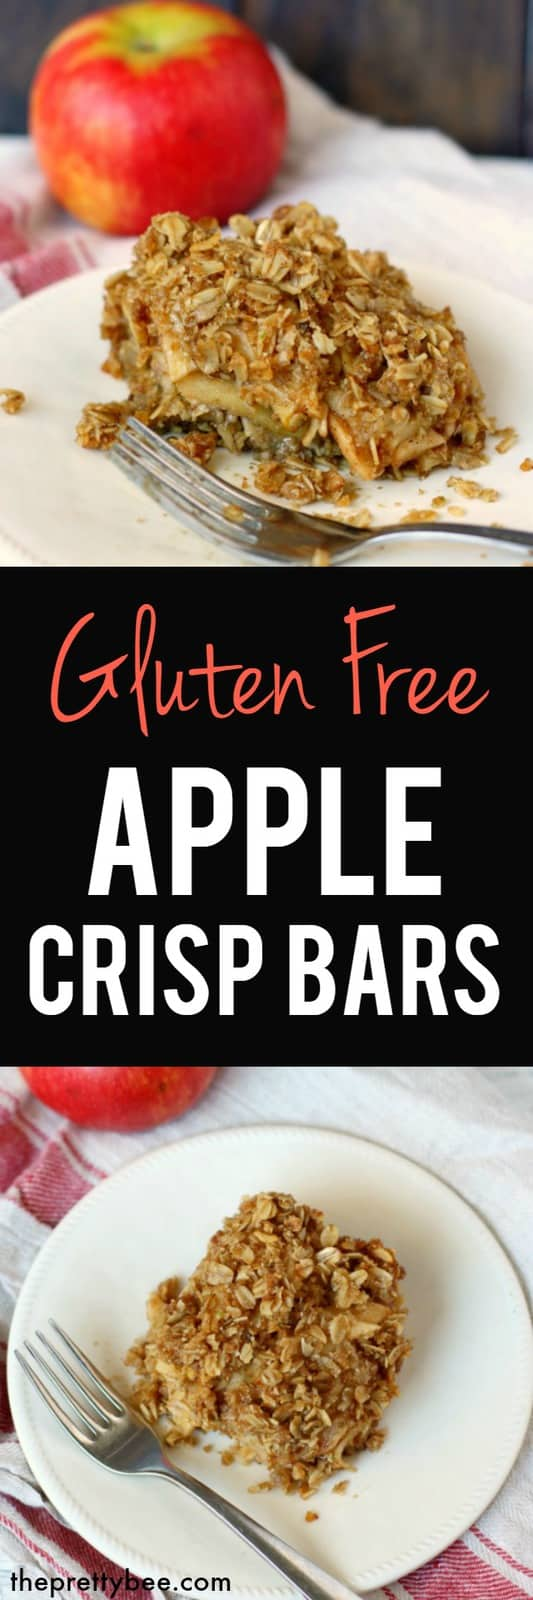 These apple crisp bars are delicious and perfect for Thanksgiving! #glutenfree #vegan